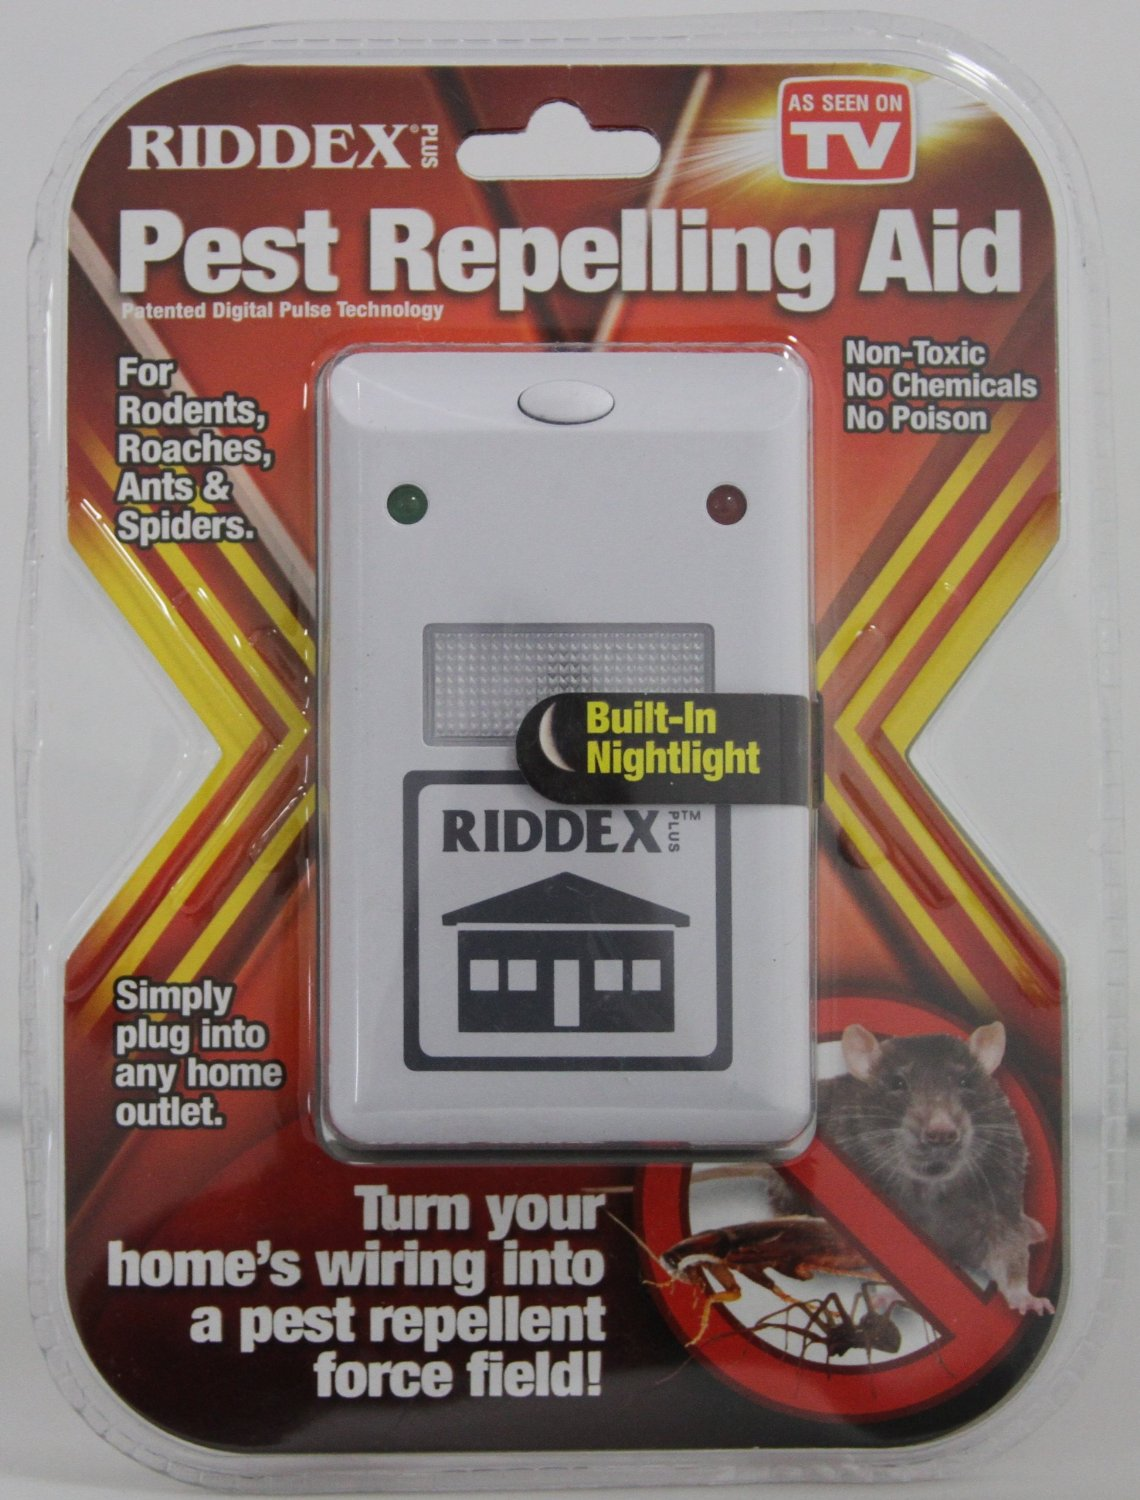 Ultrasonic Pest Repeller Guide For 2017 Home And Garden Repellents Wiring A Plug Top Riddex Repelling Aid